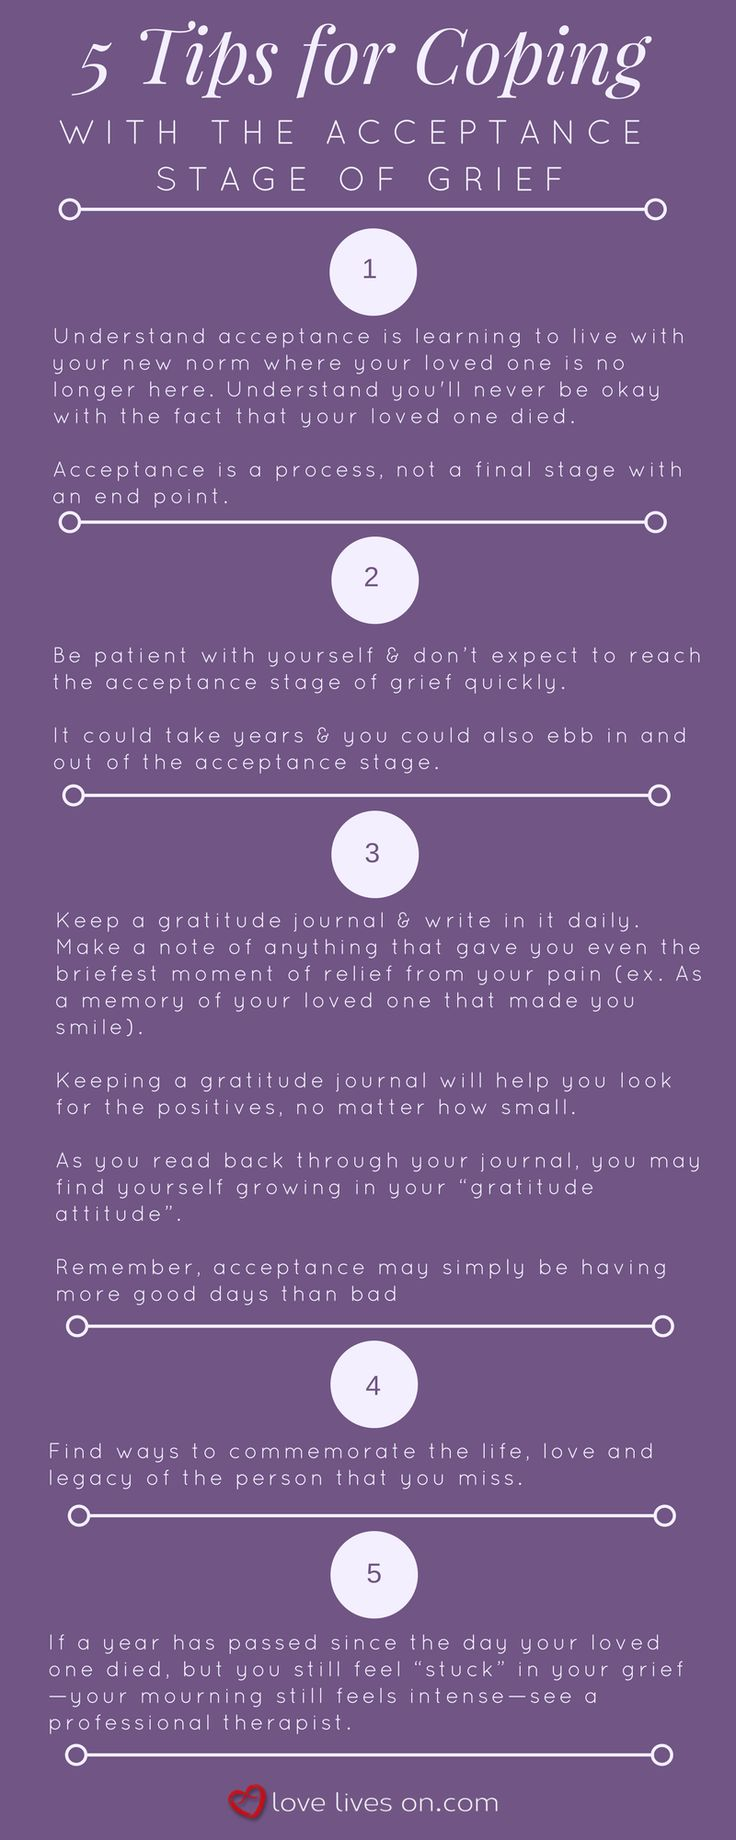 Infographic: 5 Tips for Coping with the Acceptance Stage of Grief.